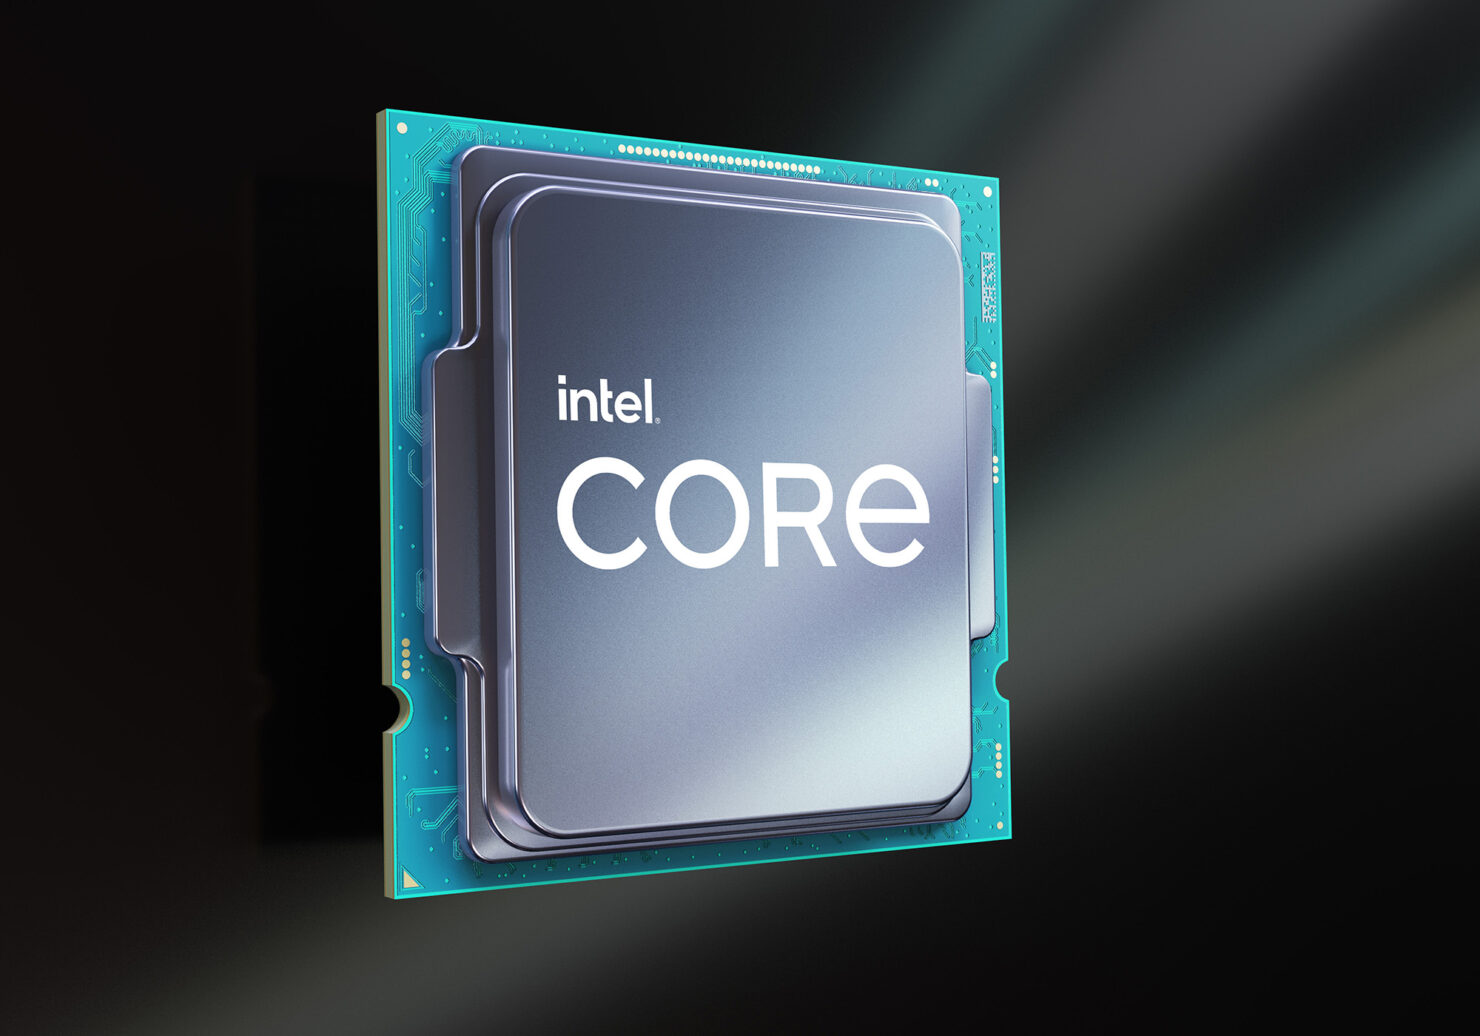 intel-rocket-lake-core-i7-11700k-vs-core-i9-10900k-cpu-gaming-benchmarks-leaked-–-reportedly-faster-than-comet-lake-with-new-bios